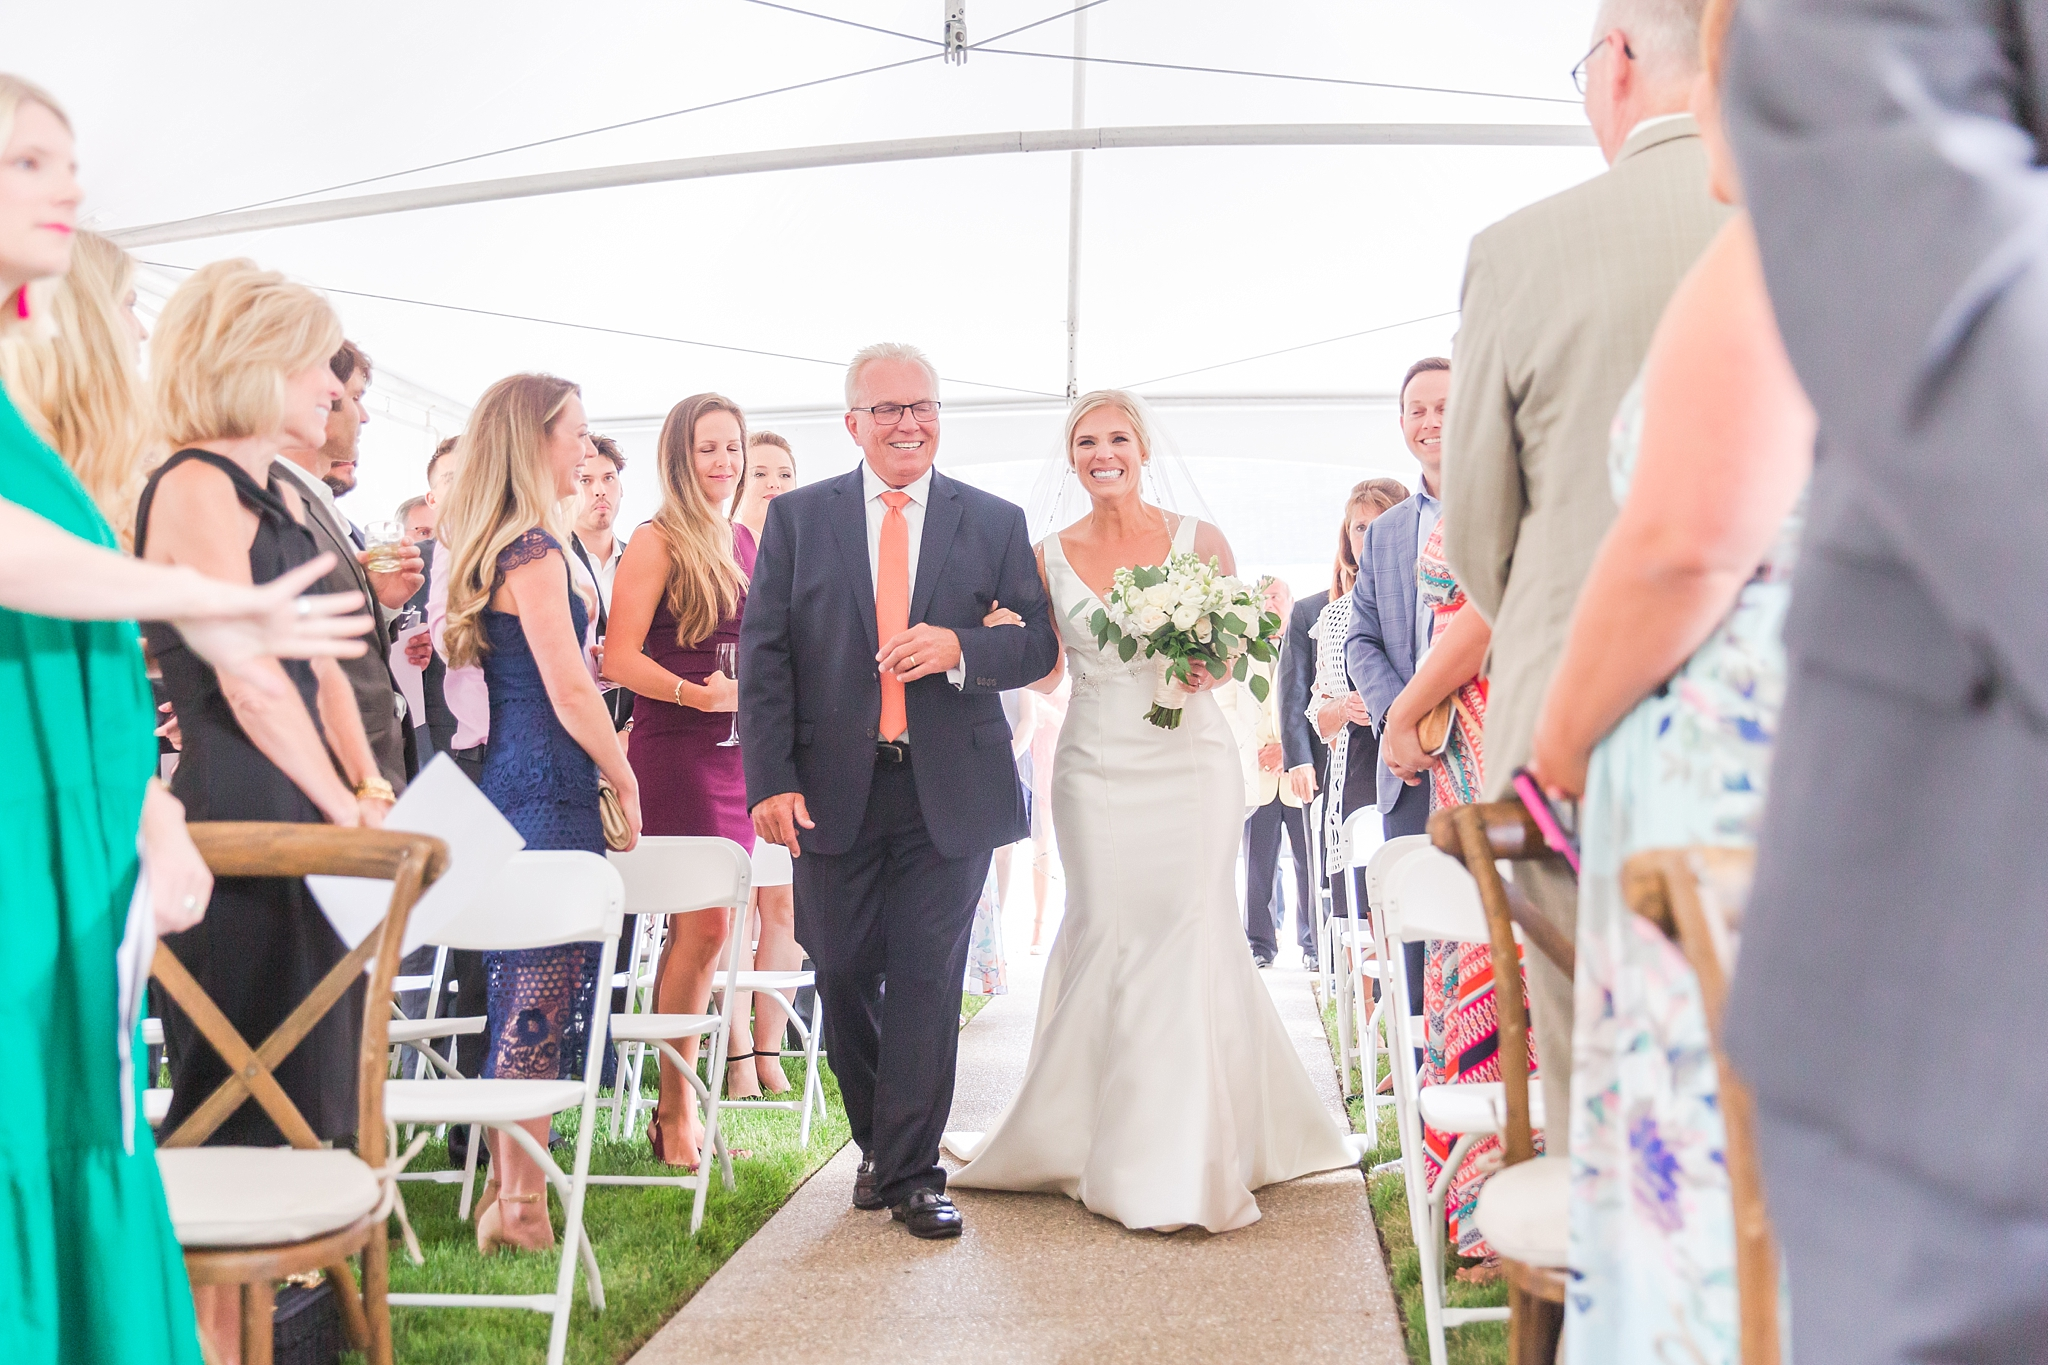 casually-chic-modern-wedding-photos-at-the-chapman-house-in-rochester-michigan-by-courtney-carolyn-photography_0034.jpg